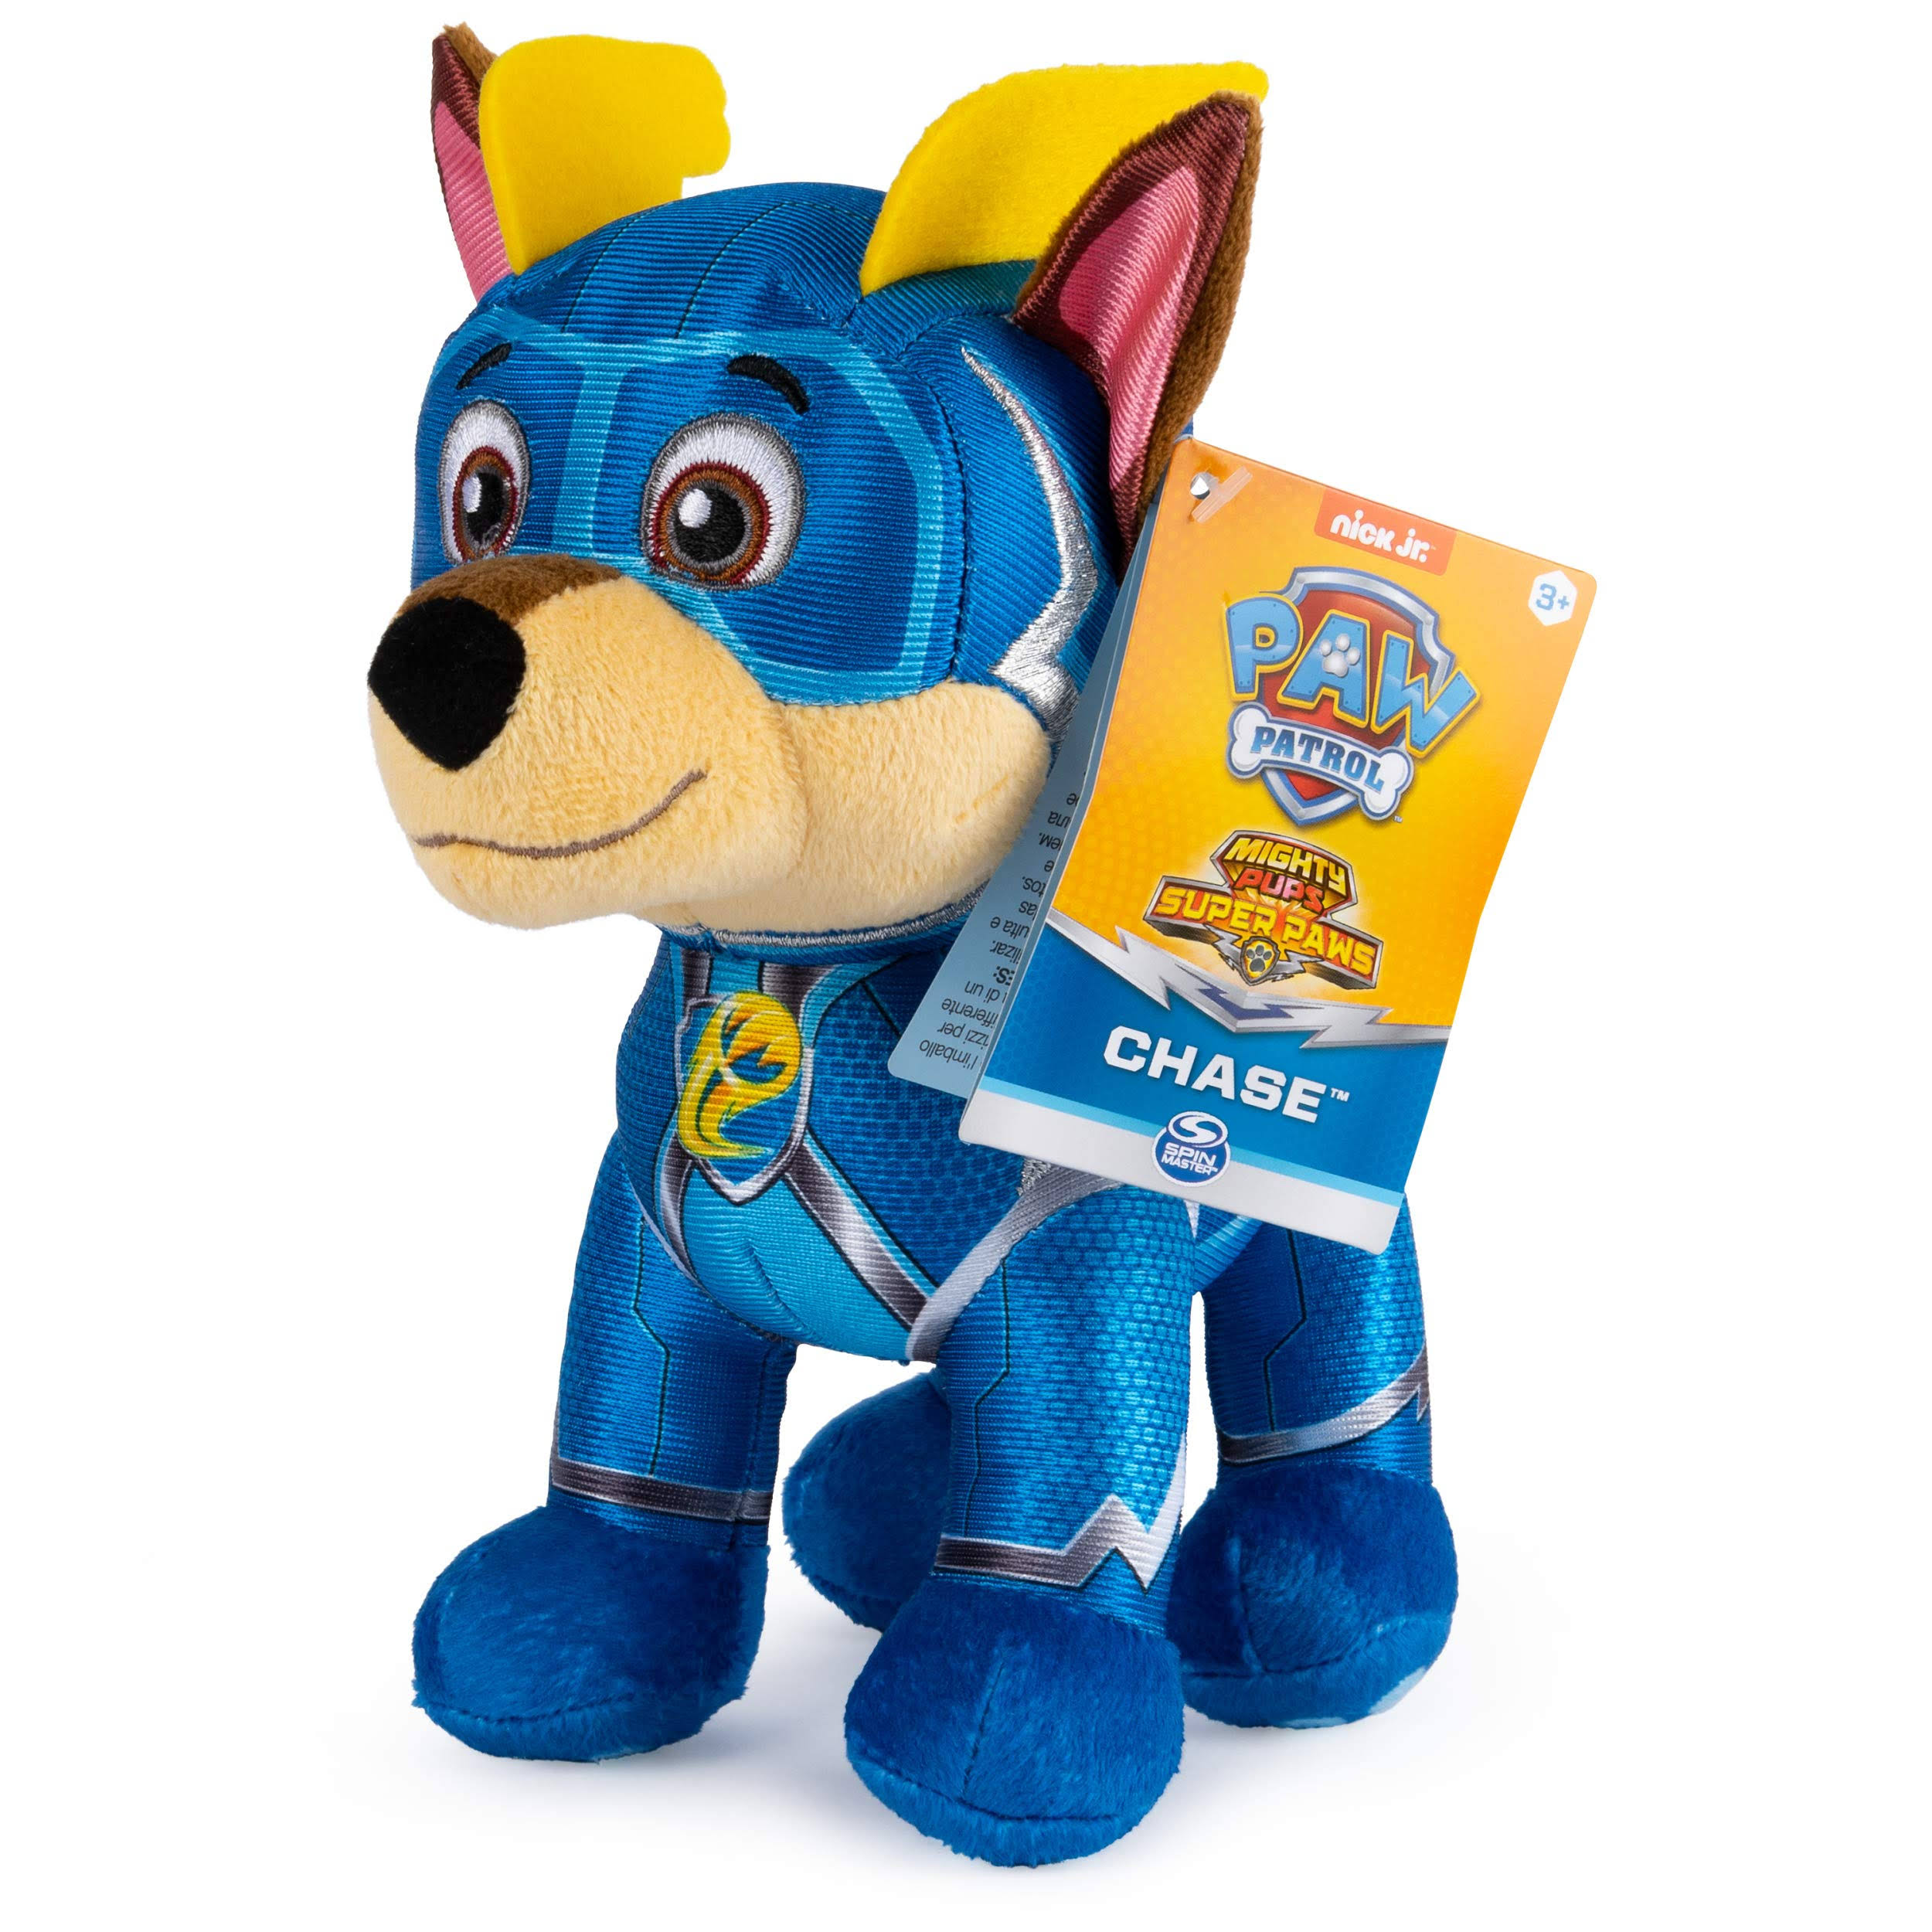 Paw Patrol Mighty Pups Super Paws Chase Spin Master Plush Stuffed Toy